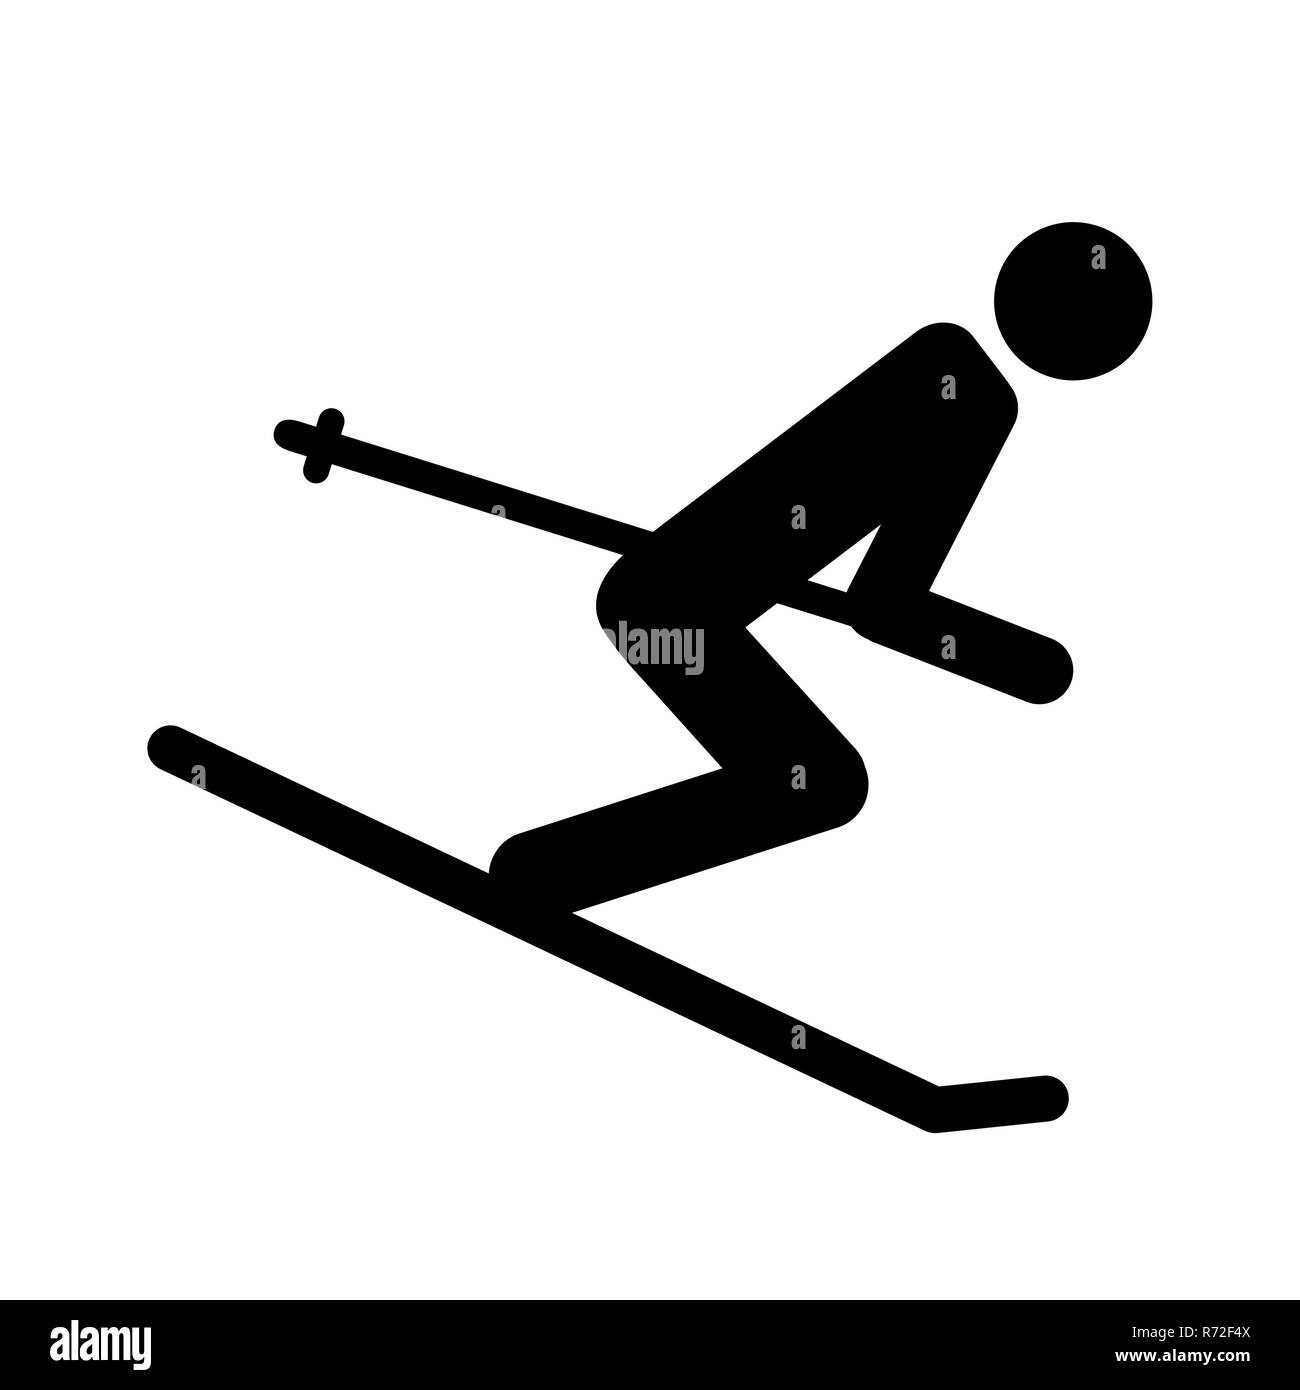 8f1e92bbe5b4 Snowboarding Pictogram Icon Stock Photos   Snowboarding Pictogram ...